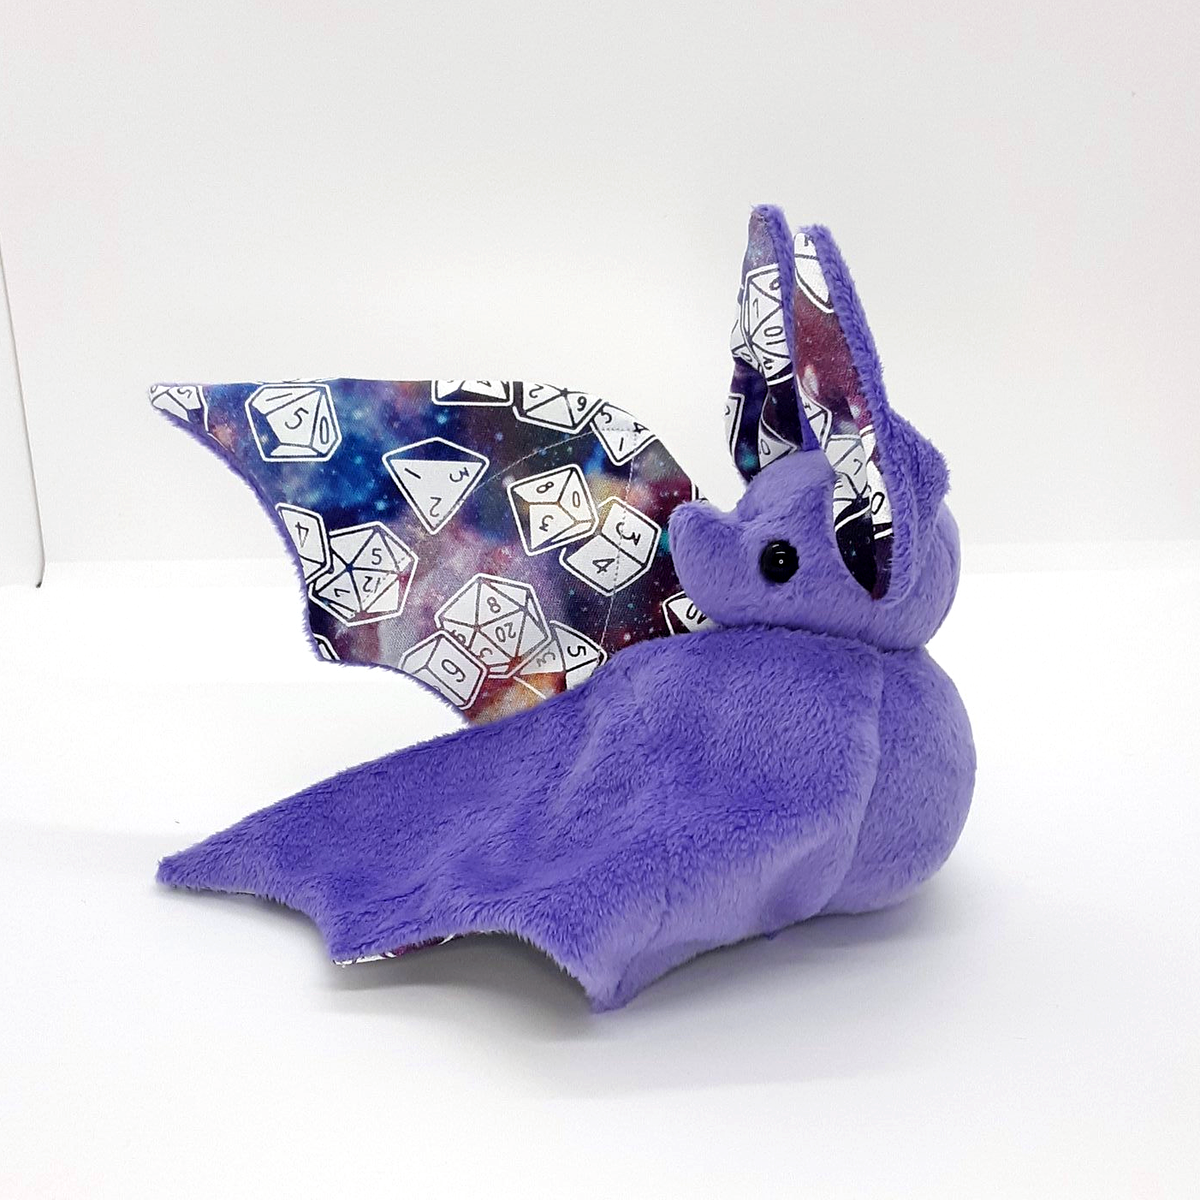 Image of Galaxy Dice bat (Black or Lavender colour option) -  Made to Order